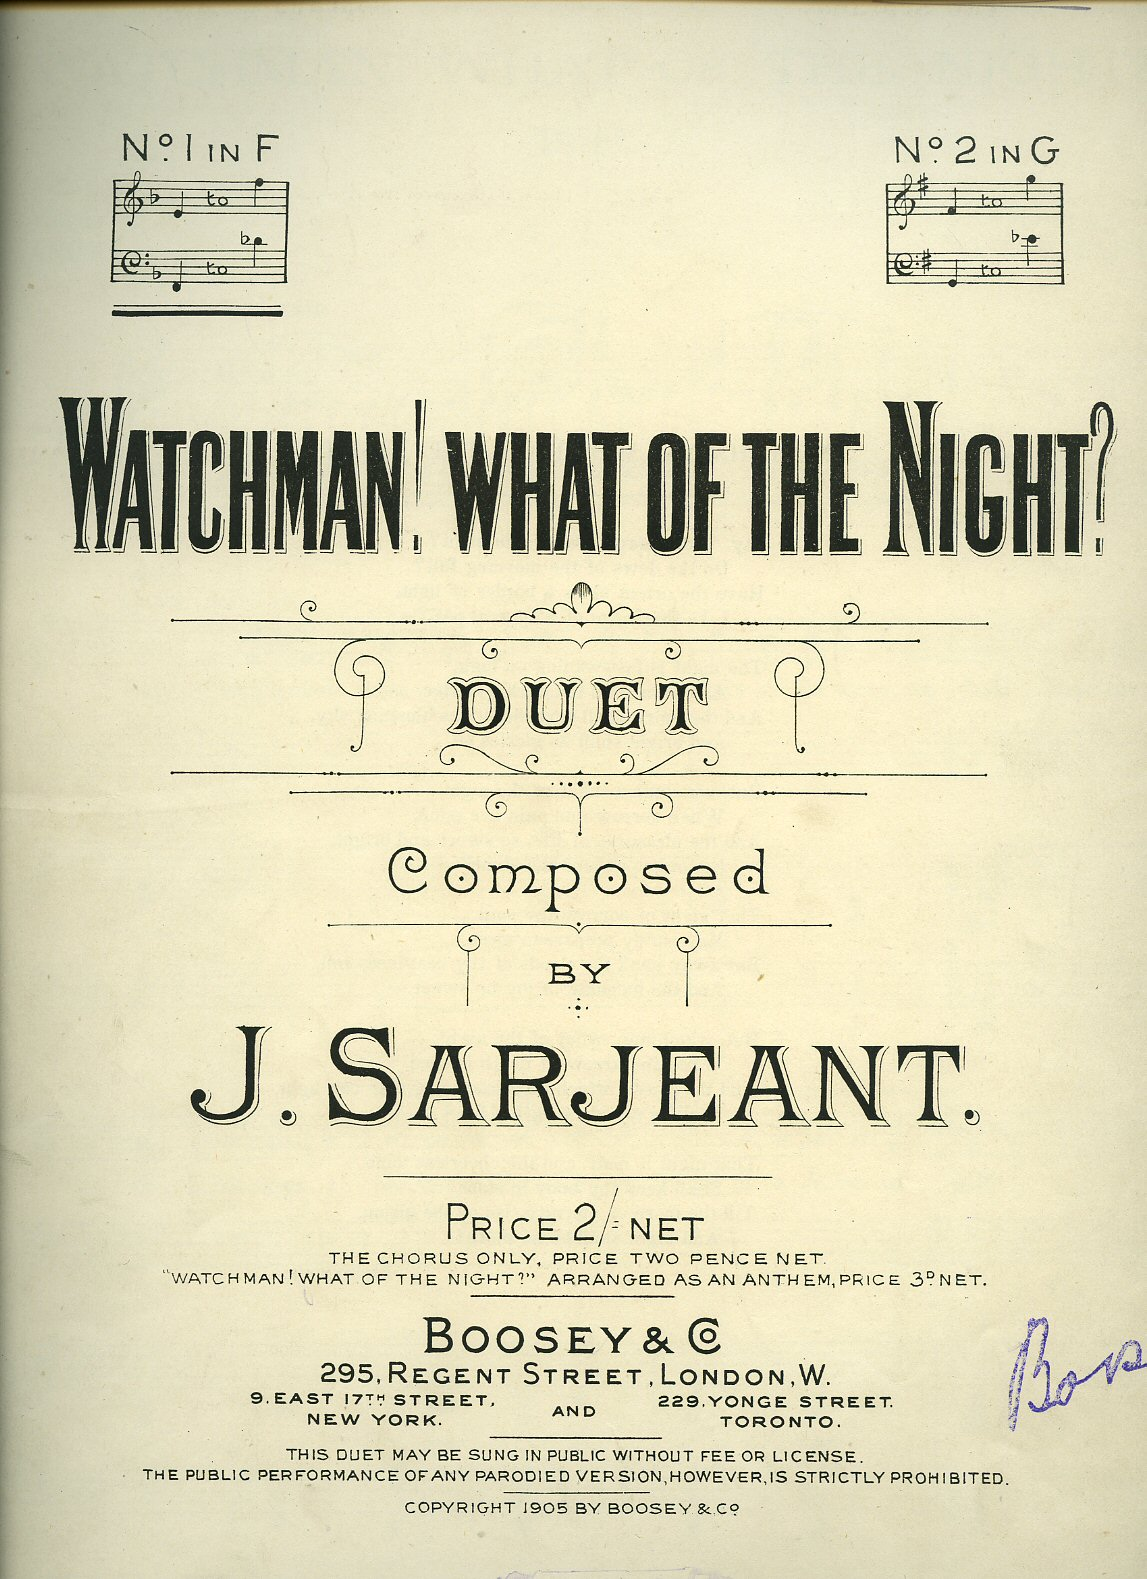 J. SARJEANT [MUSIC] ANON [LYRICS] - Watchman! What of the Night? Duet [Vintage Piano Sheet Music] [1]